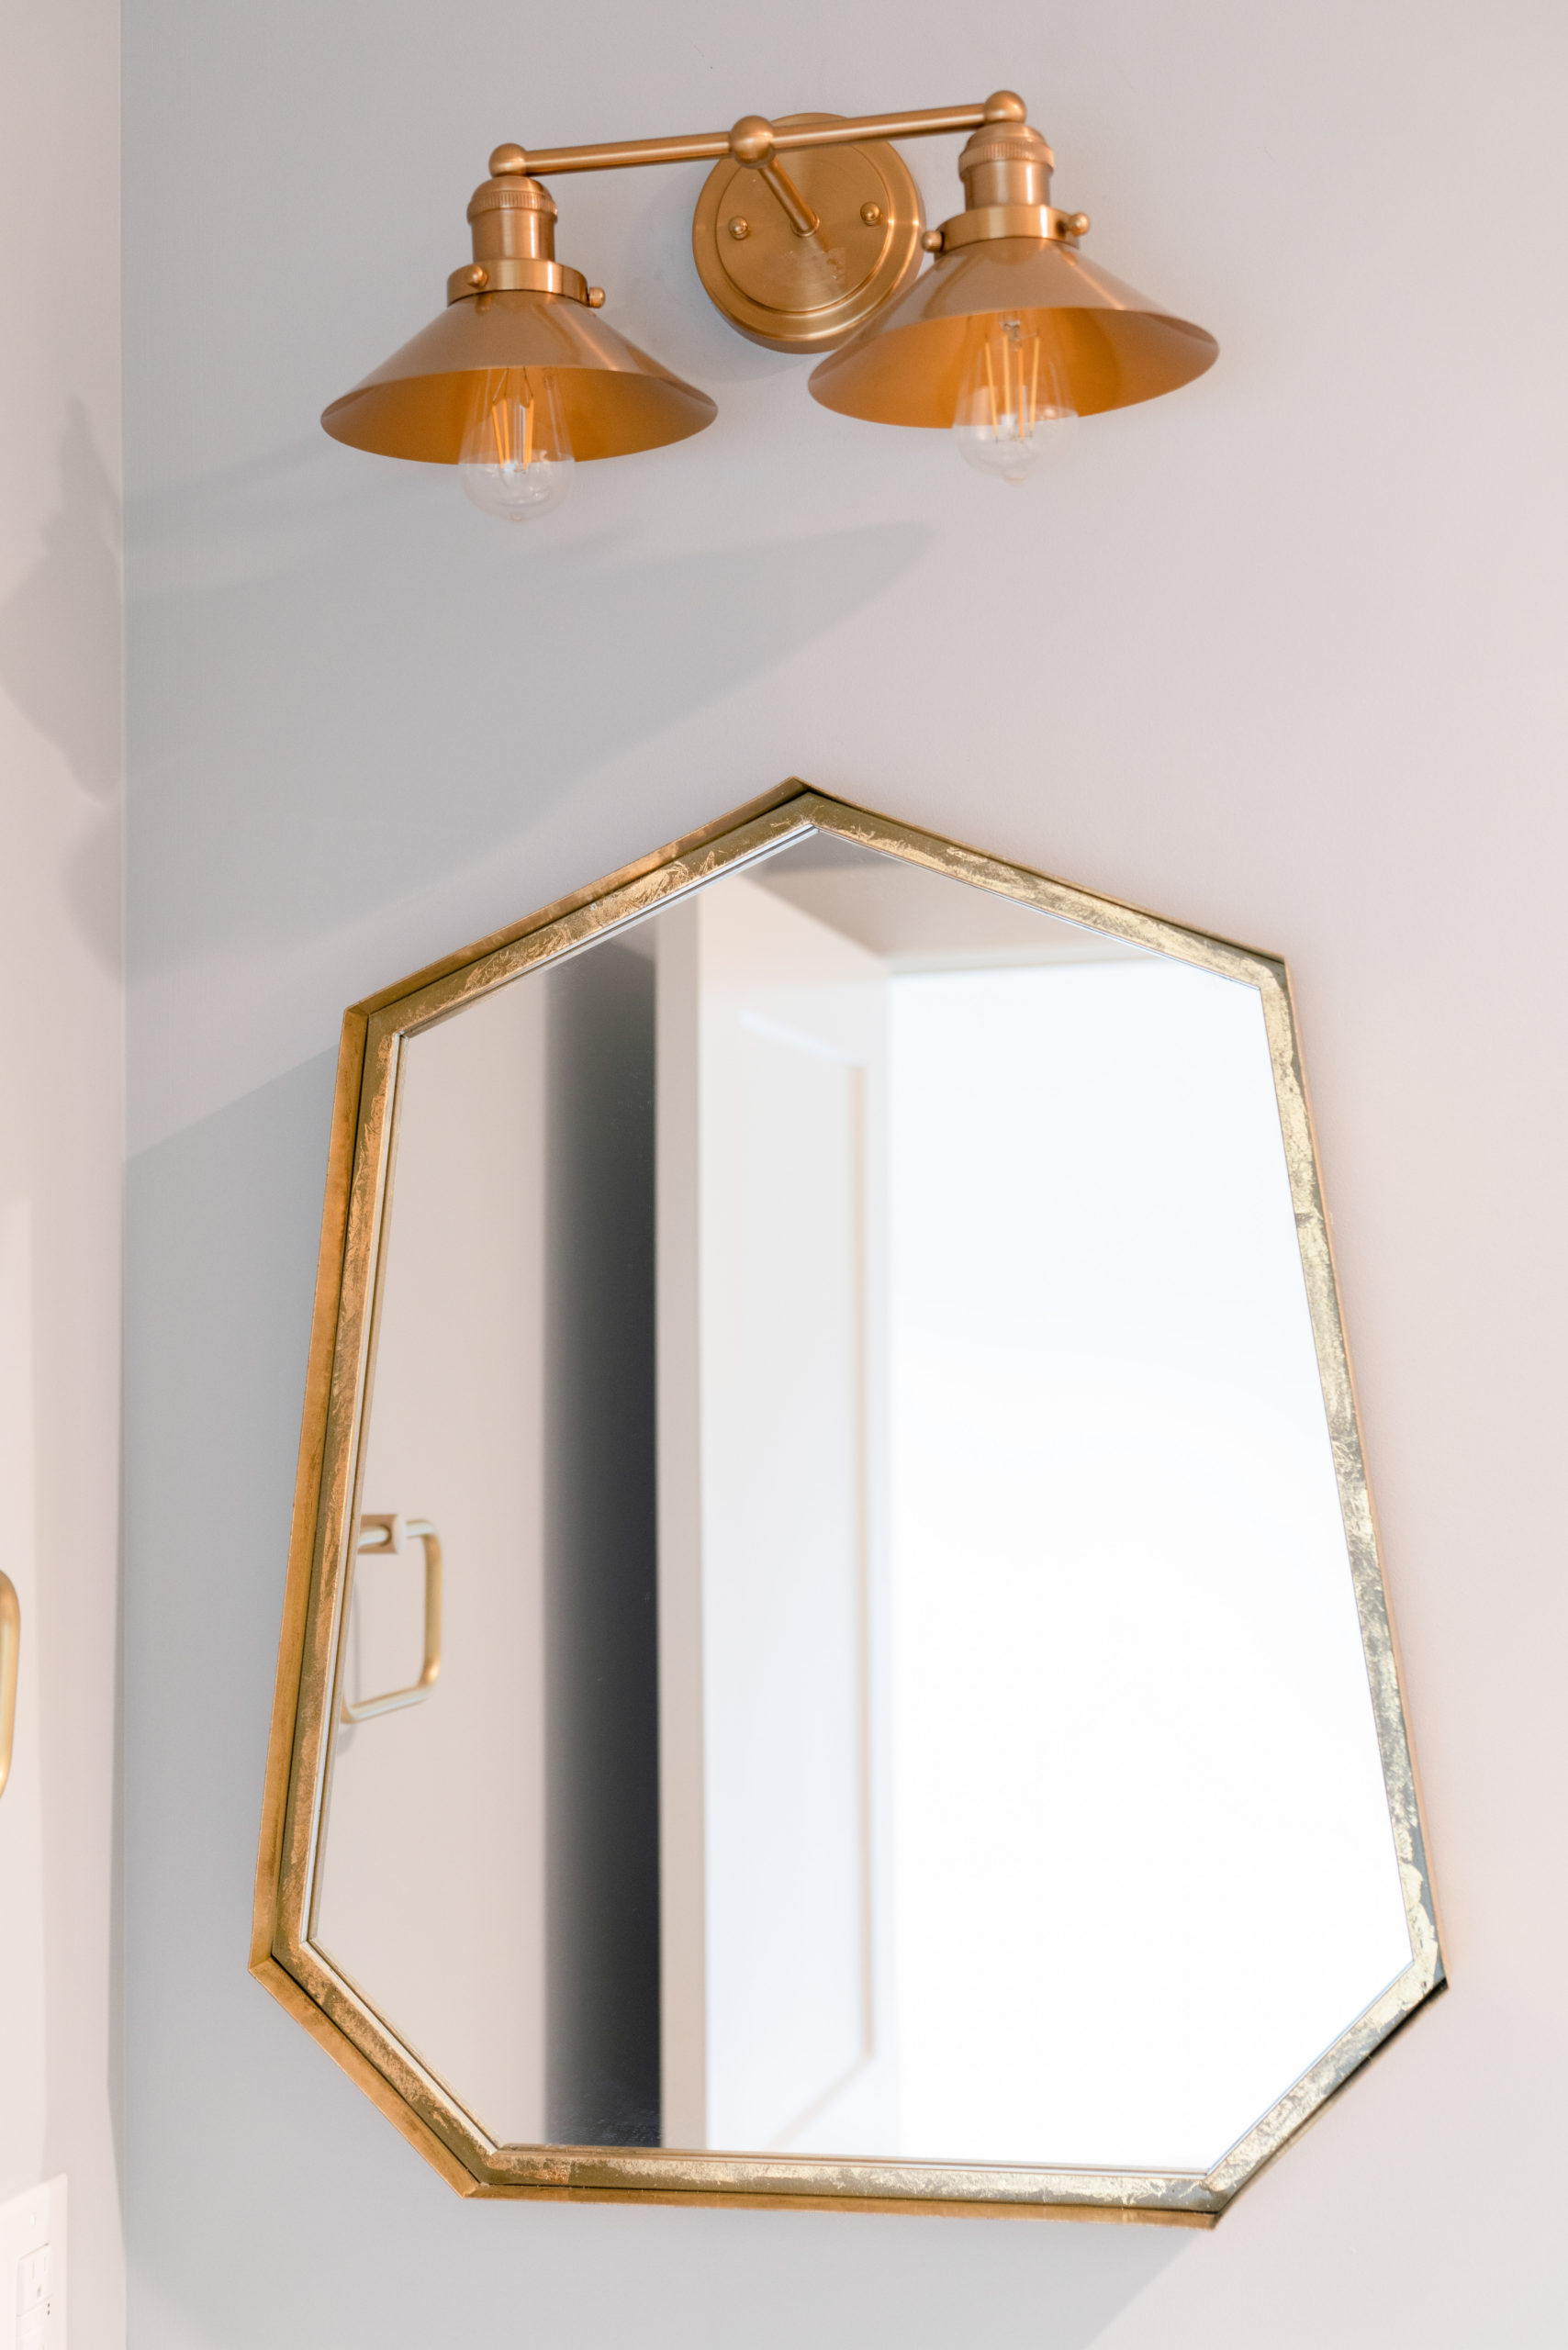 gold mirror in bathroom with gold light fixture